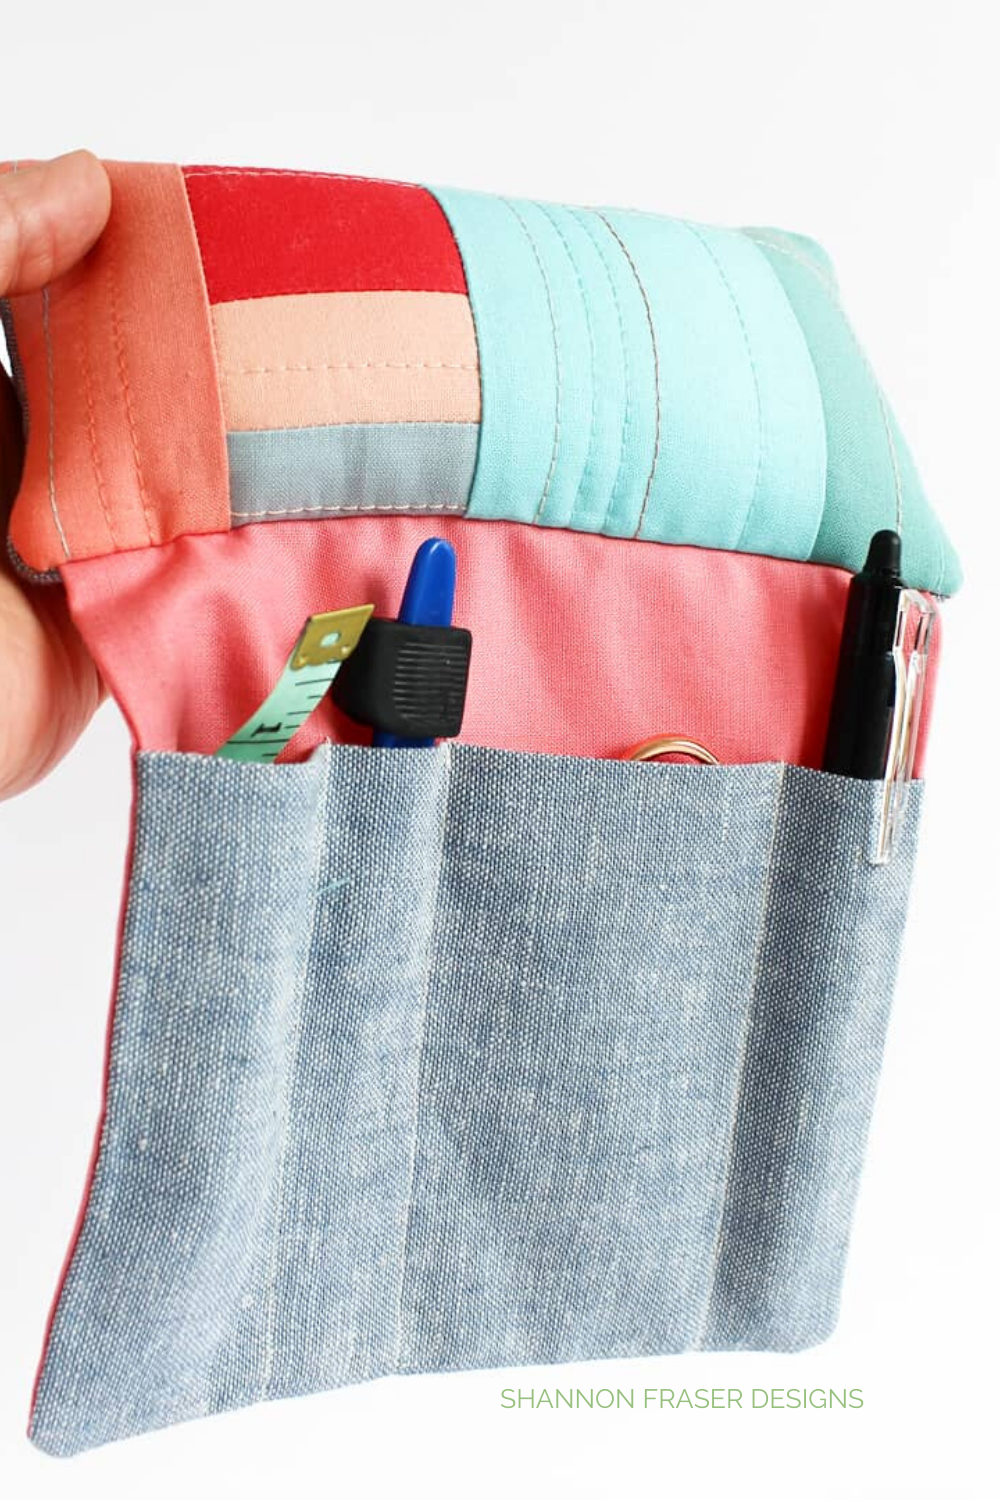 Close up of Sit 'n Sew pincushion showing off stored sewing notions in the pockets | Shannon Fraser Designs